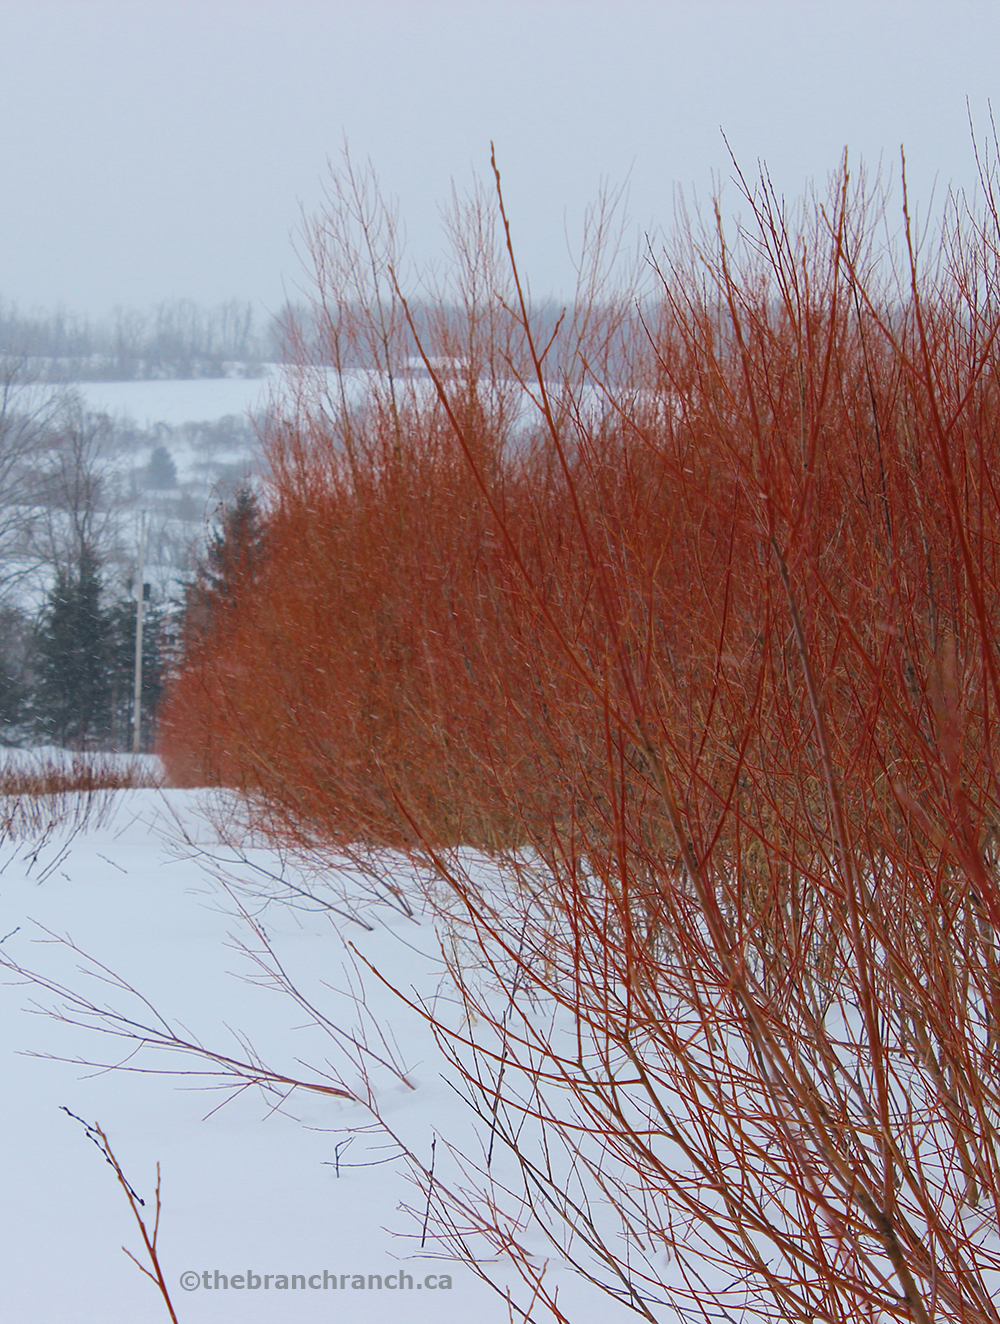 Flame willow in the field.